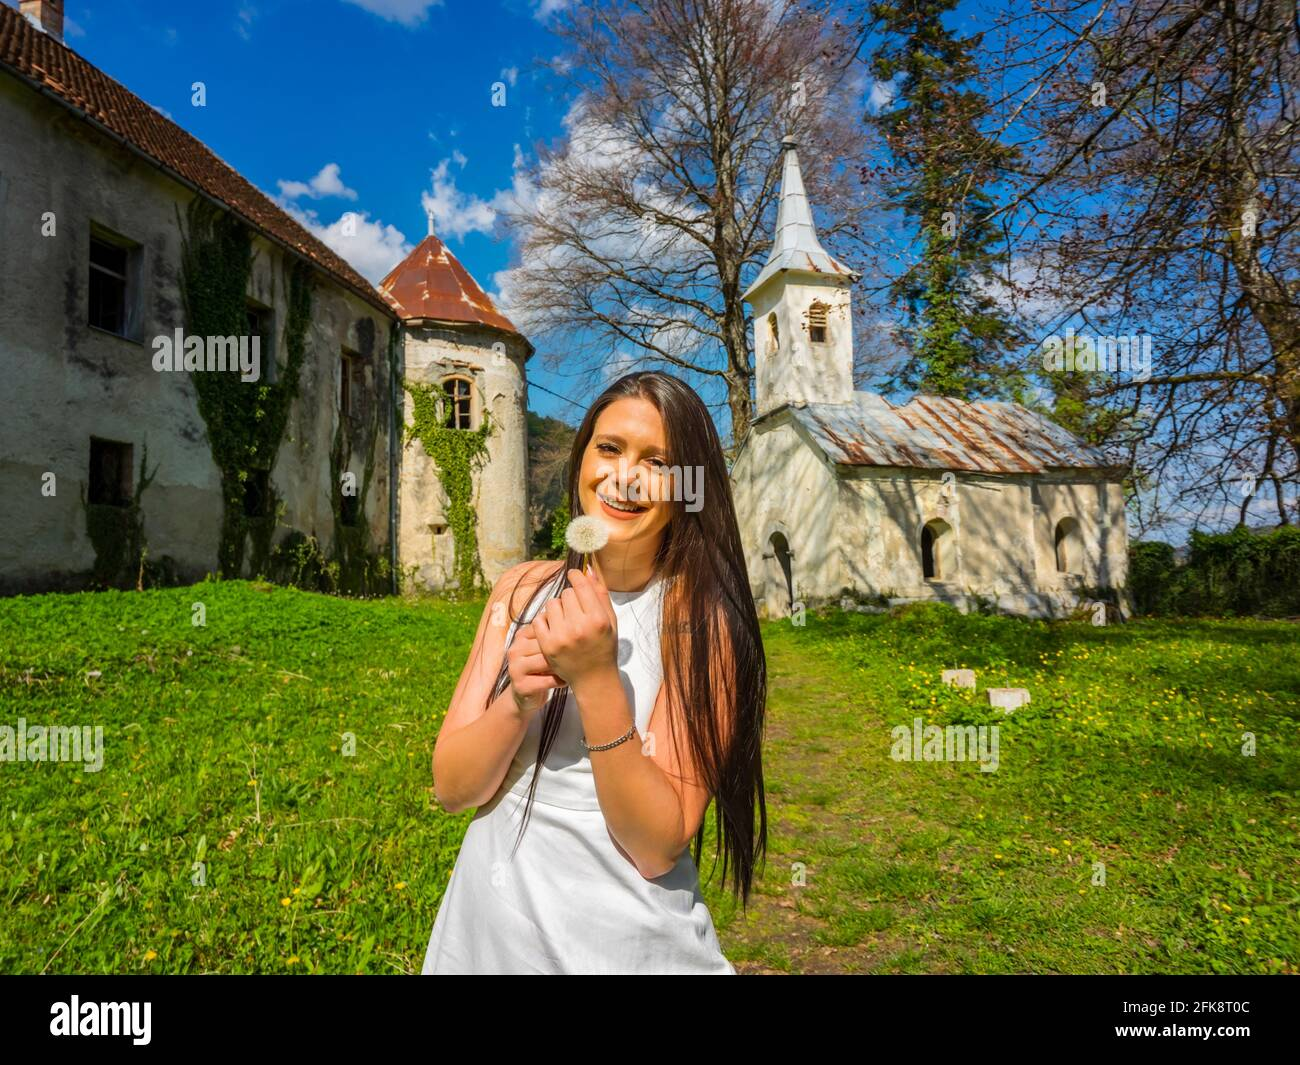 Young woman happy smiling with dandelion flower in hands standing looking at camera in park before abandoned fort building Stock Photo